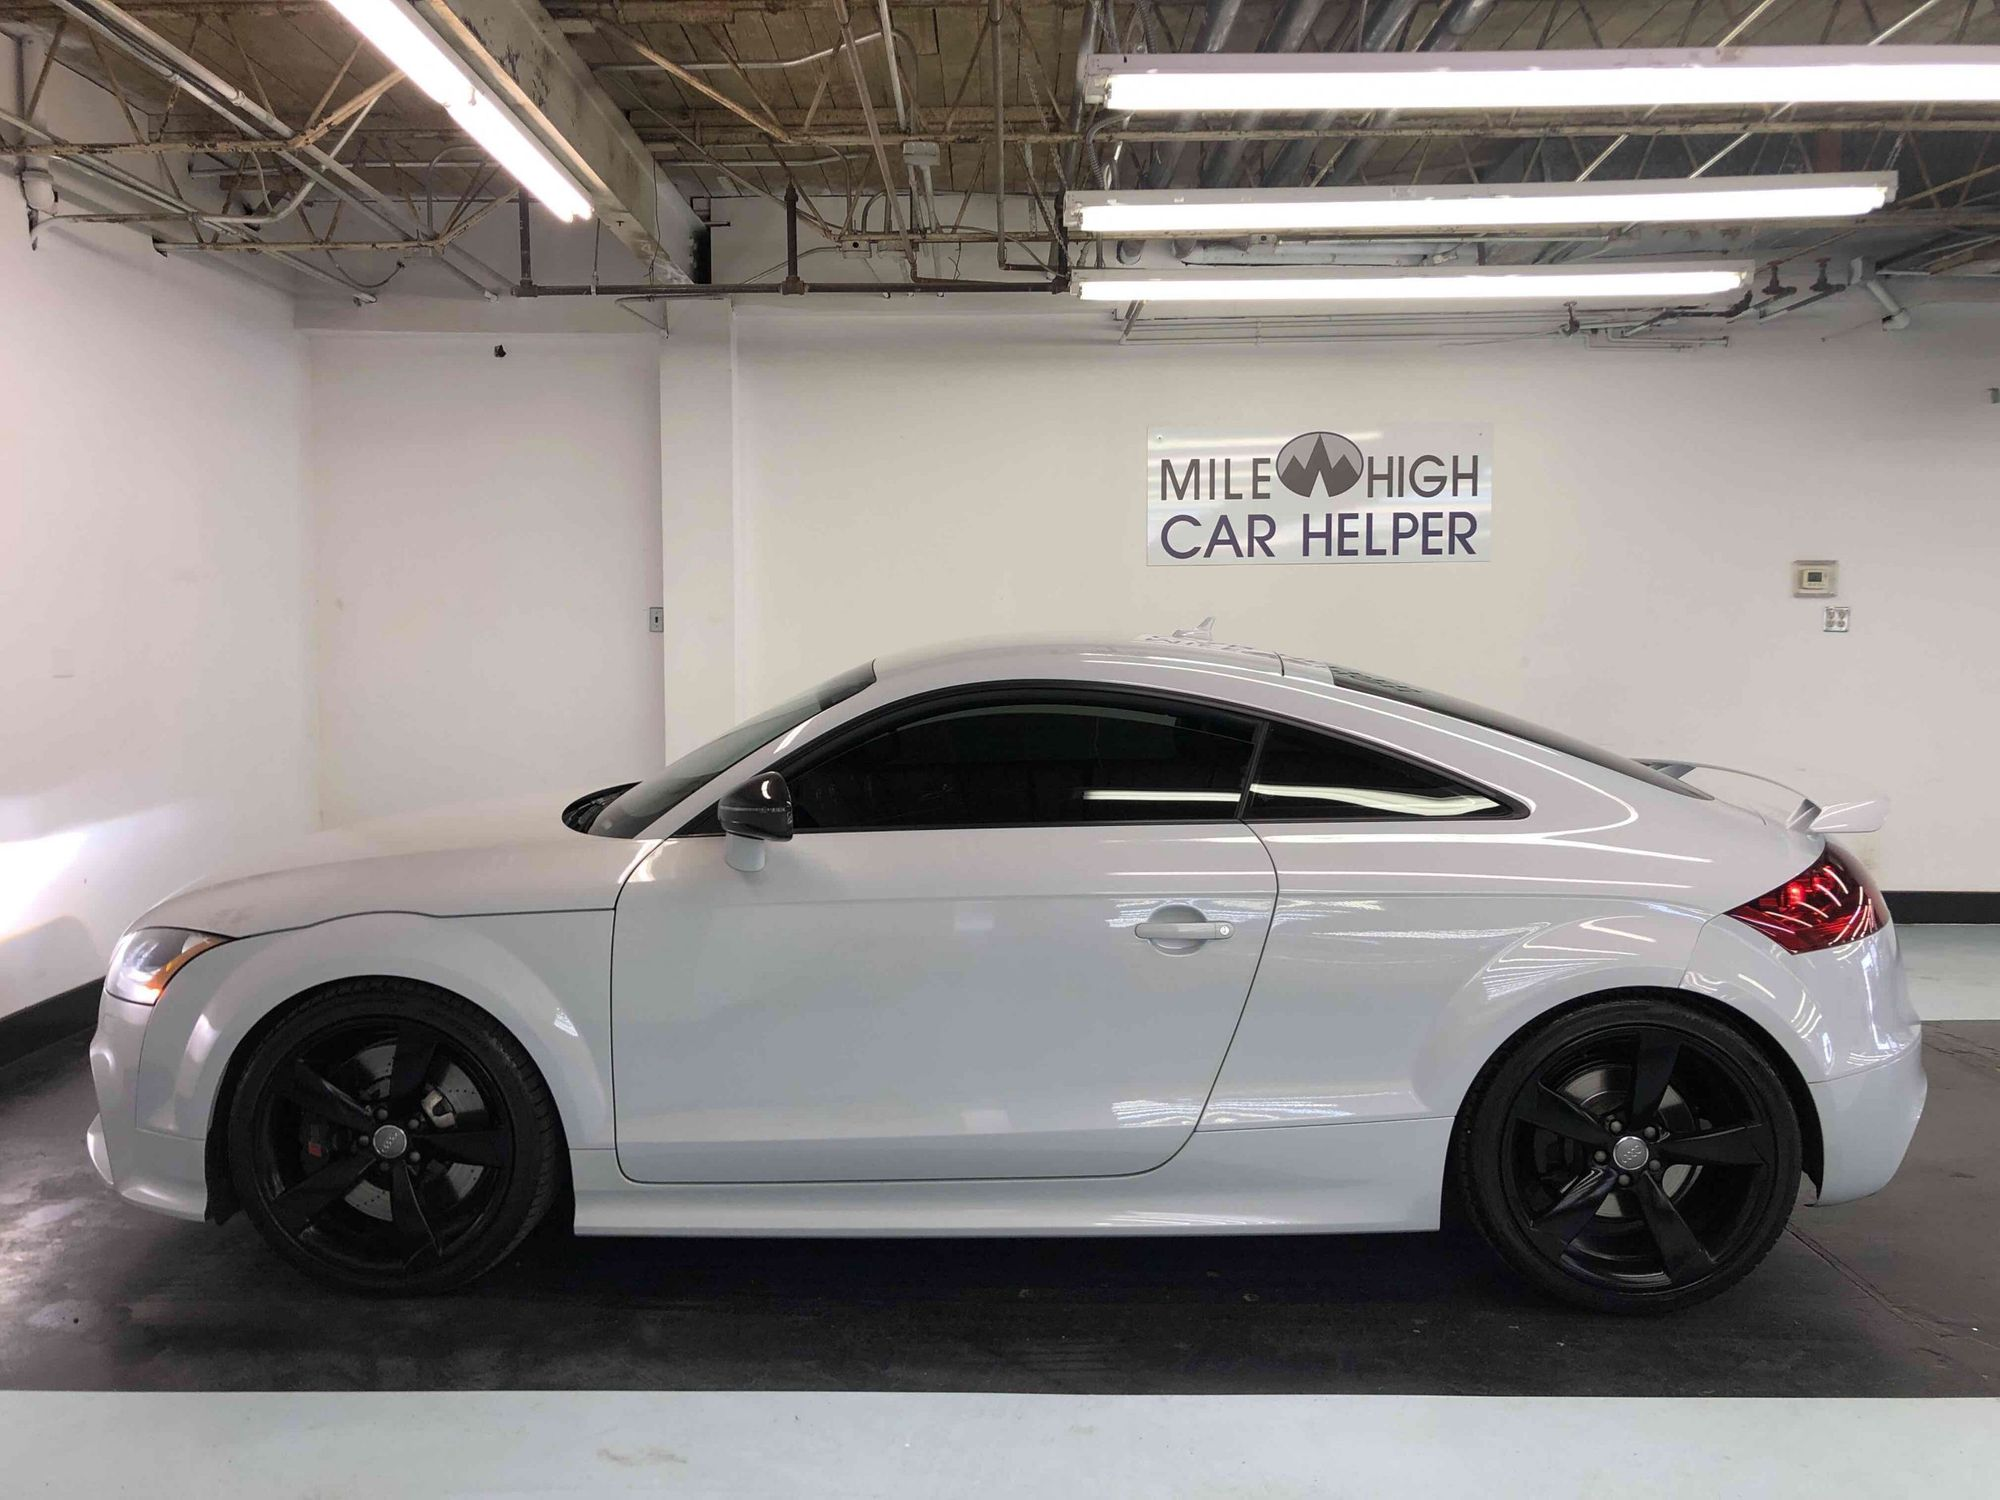 2013 Audi TT RS 2 5 quattro | Mile High Car Helper